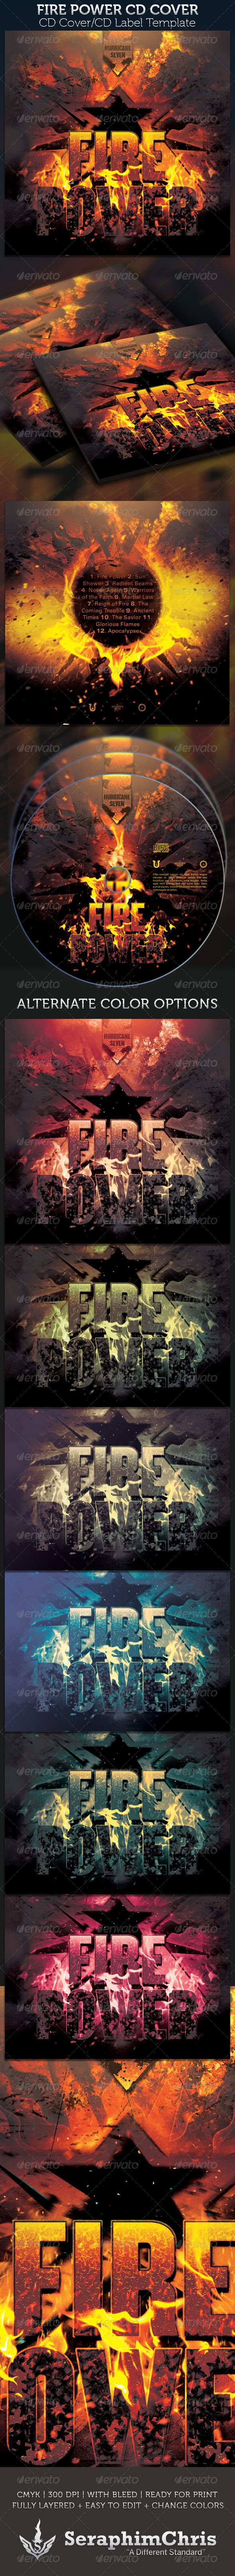 Fire Power CD Cover Template — Photoshop PSD #producer #mixtape • Available here → https://graphicriver.net/item/fire-power-cd-cover-template/2349132?ref=pxcr